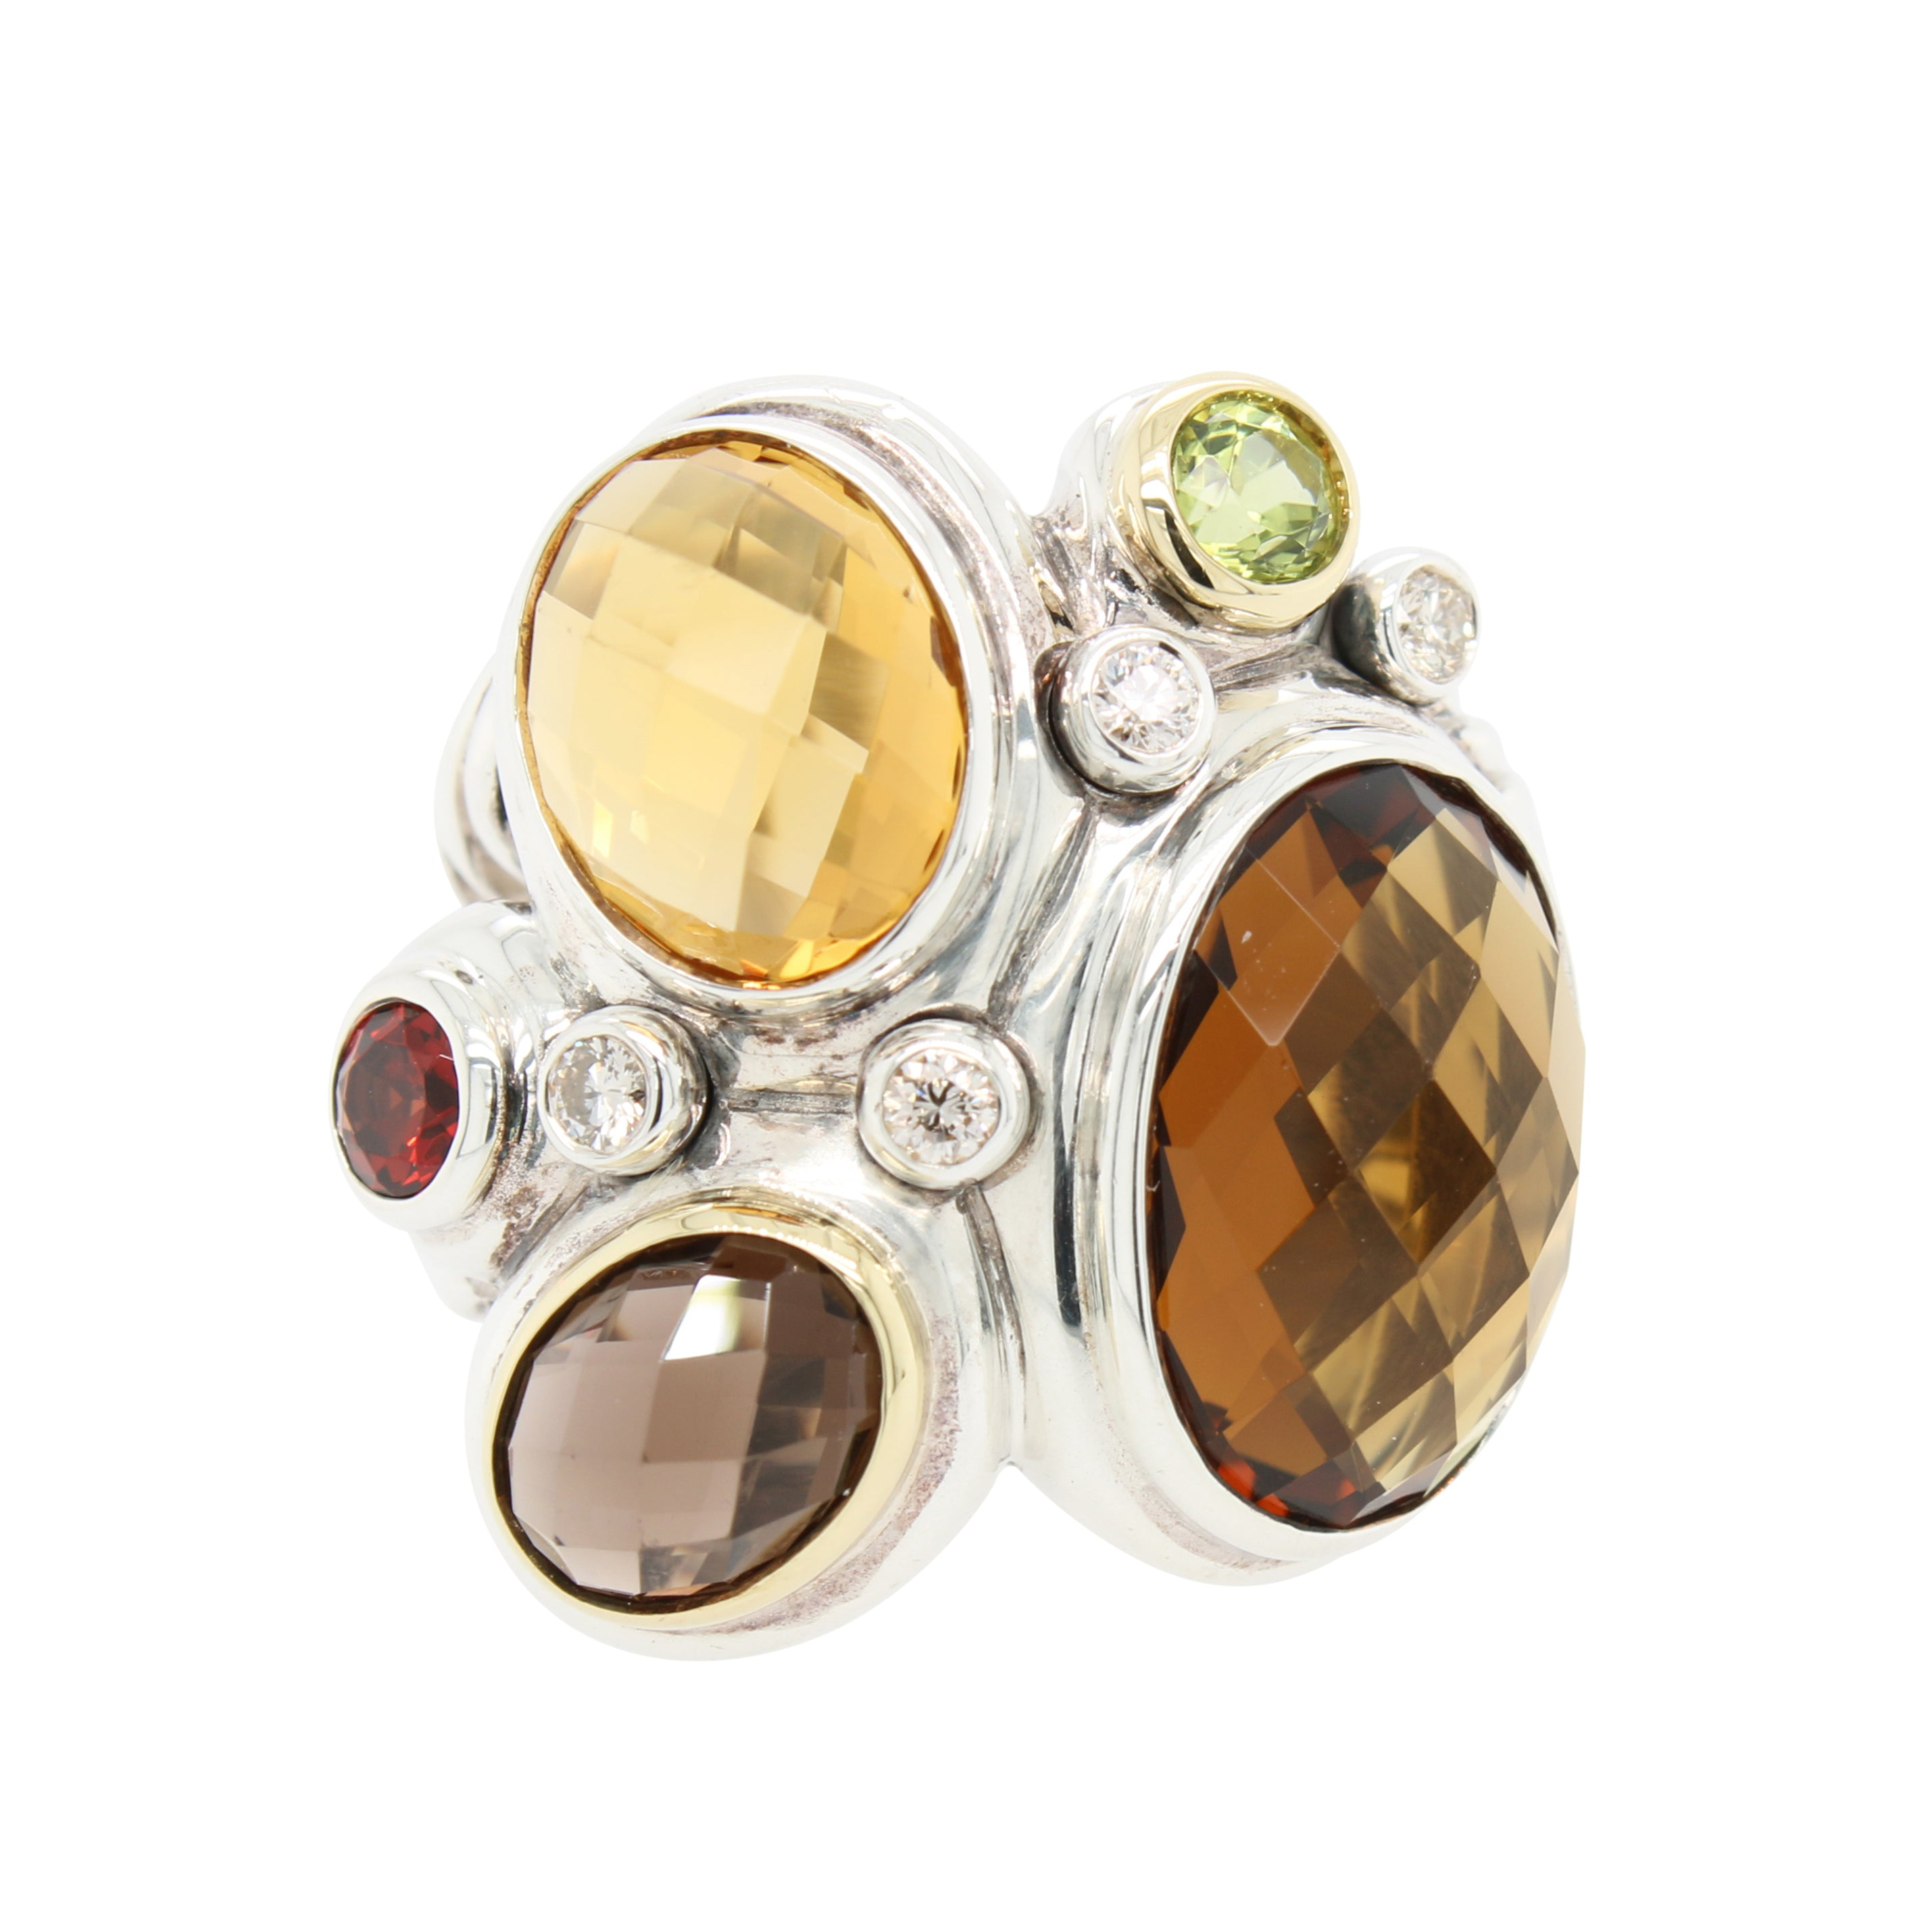 David Yurman Mosaic Ring